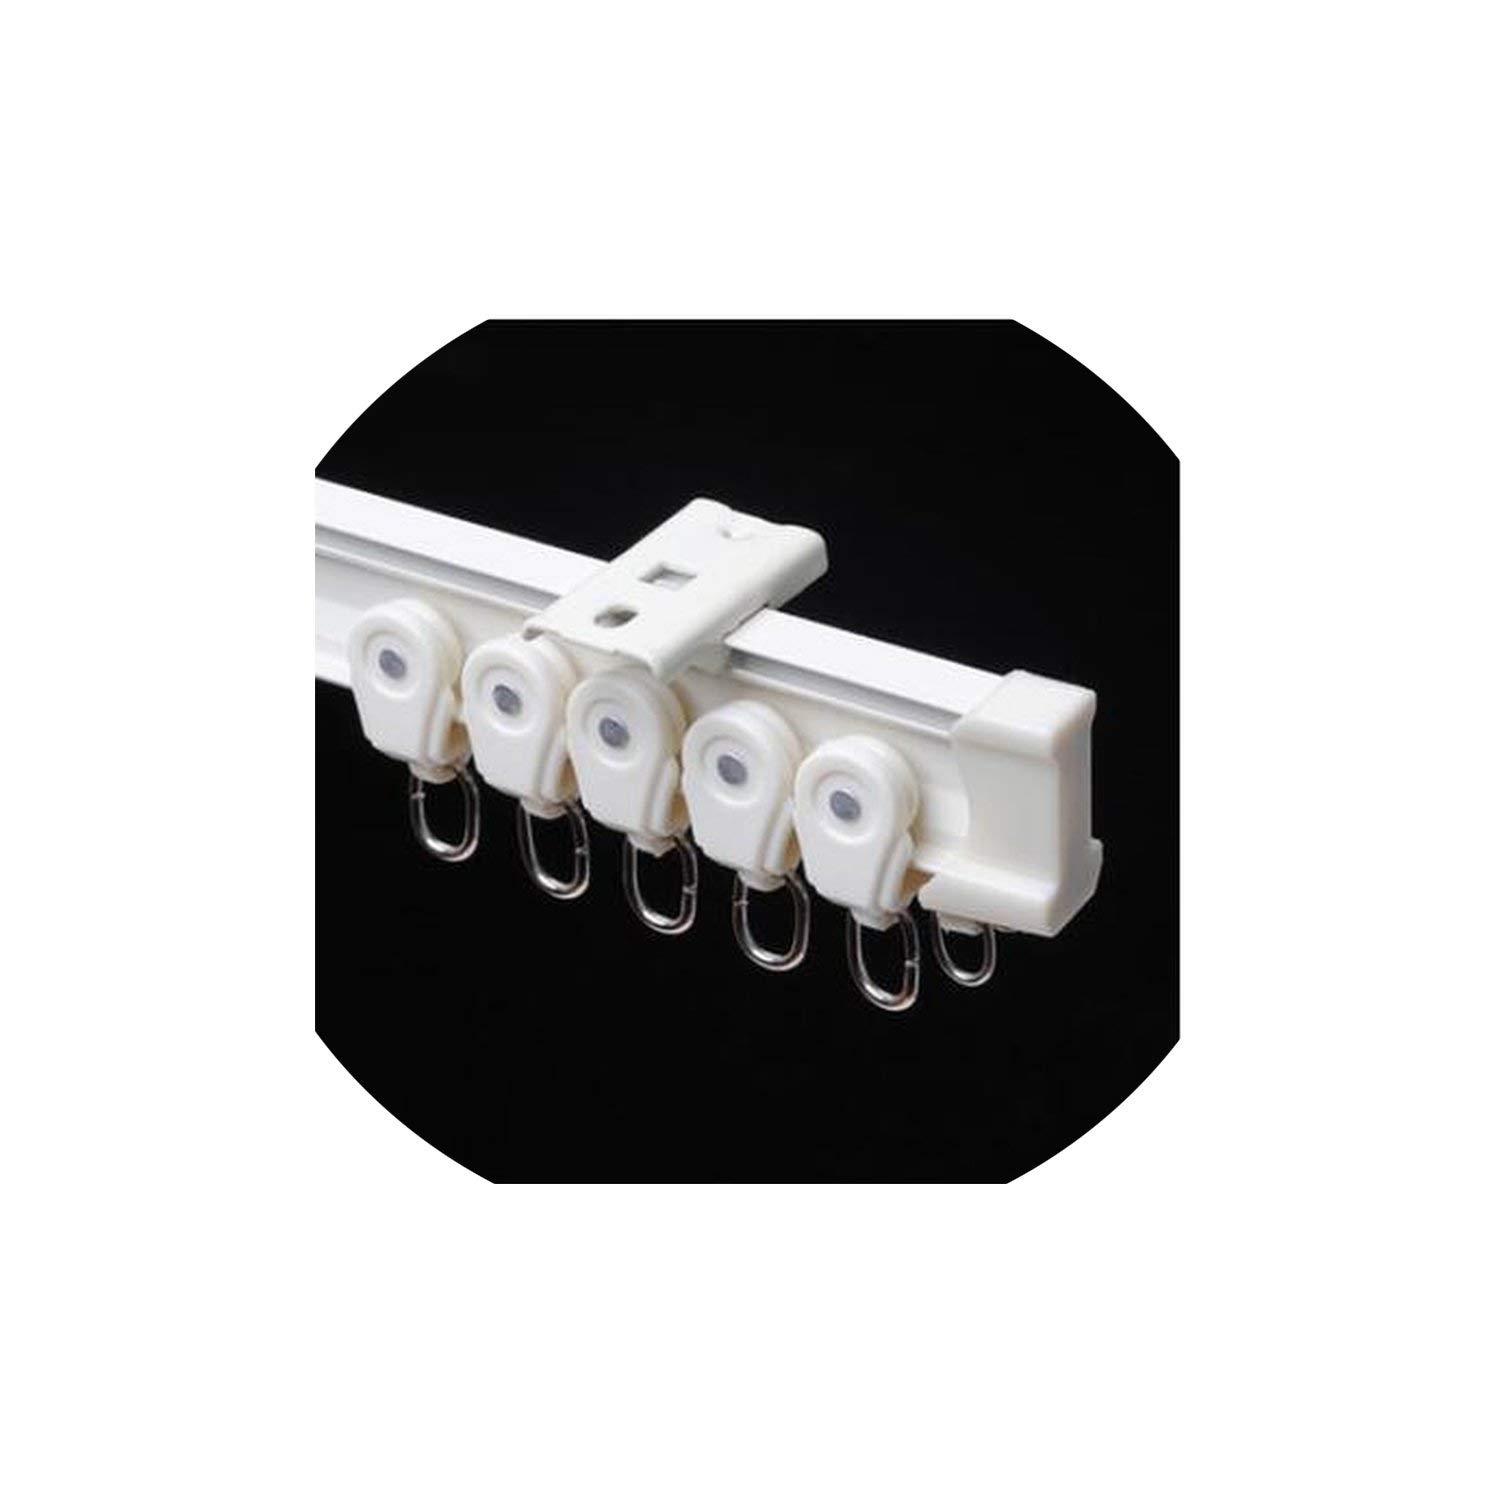 1Miter Rails Curved/Straight Track Plastic Flat Curved Track Curtain Hook Single Double Track Pole Accessories,1000Cm